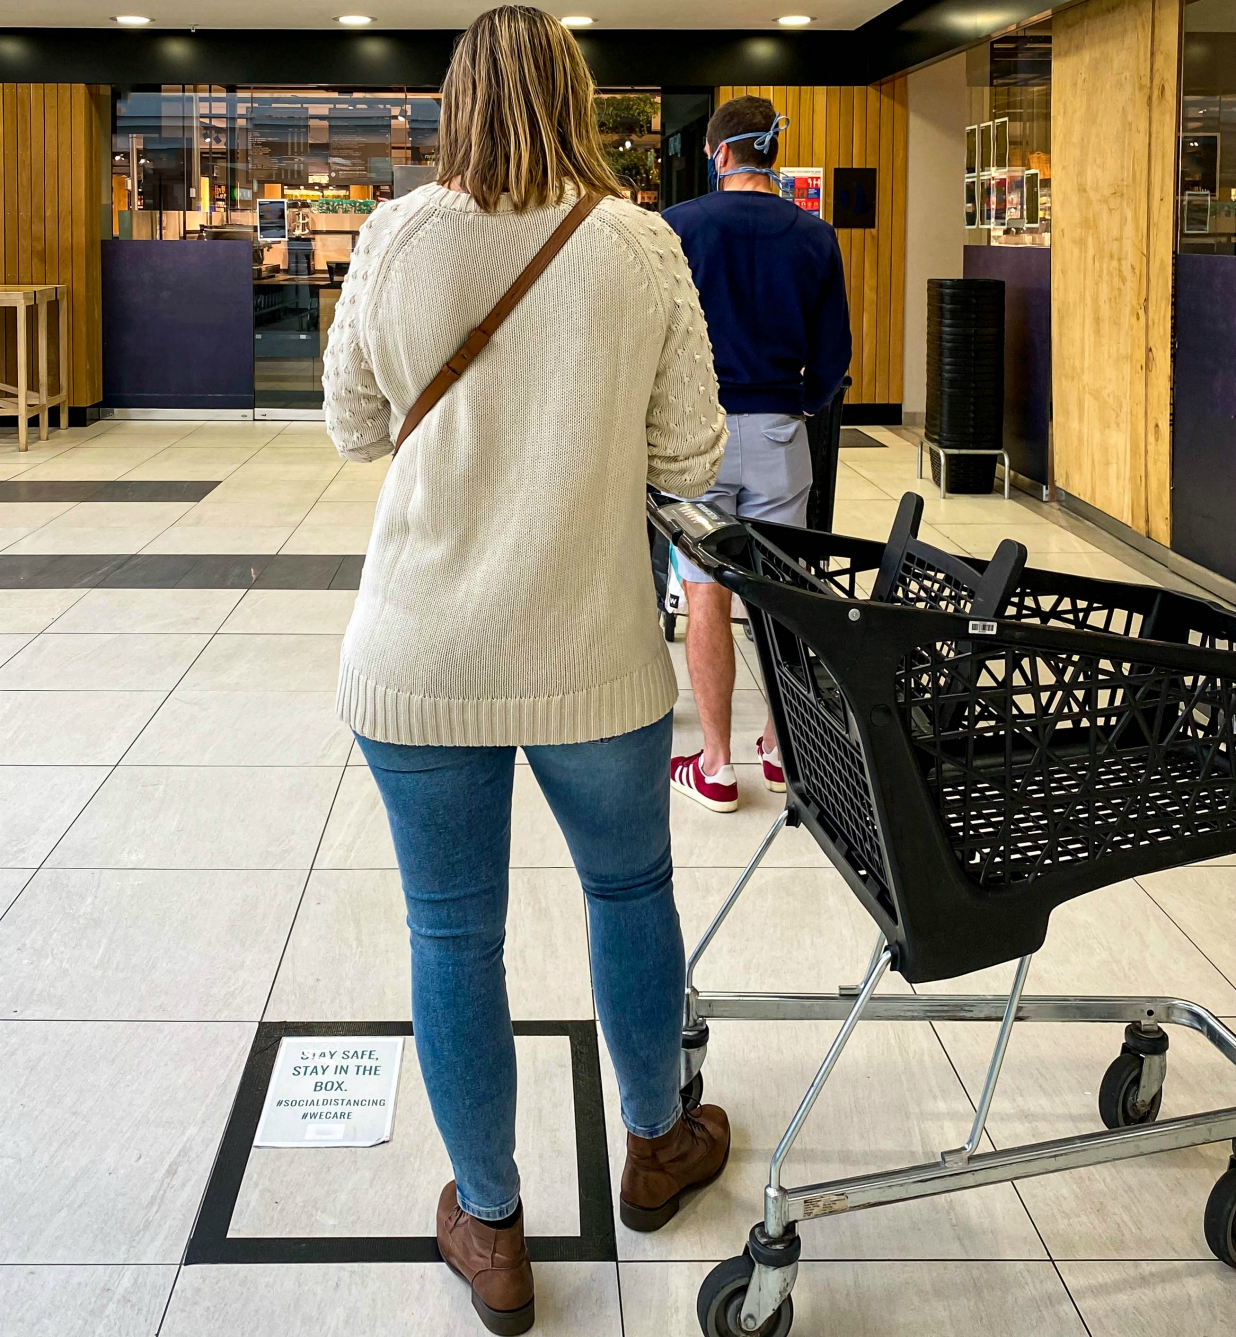 Shopping malls are starting to reopen so retail stores can follow suit, but precautions are manifold and COVID-19 cases could still rise.